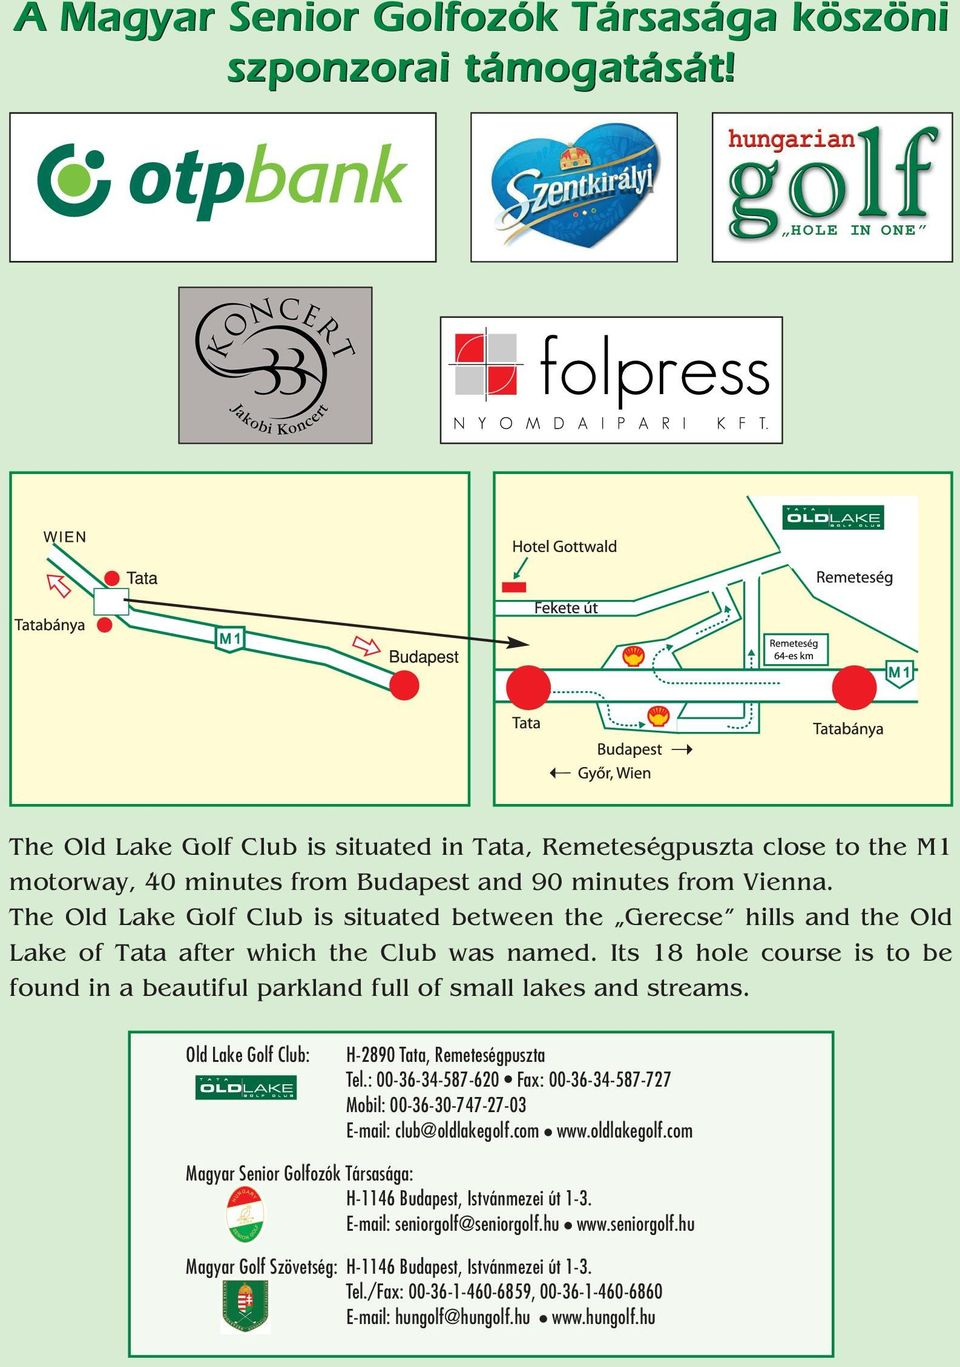 The Old Lake Golf Club is situated between the Gerecse hills and the Old Lake of Tata after which the Club was named.